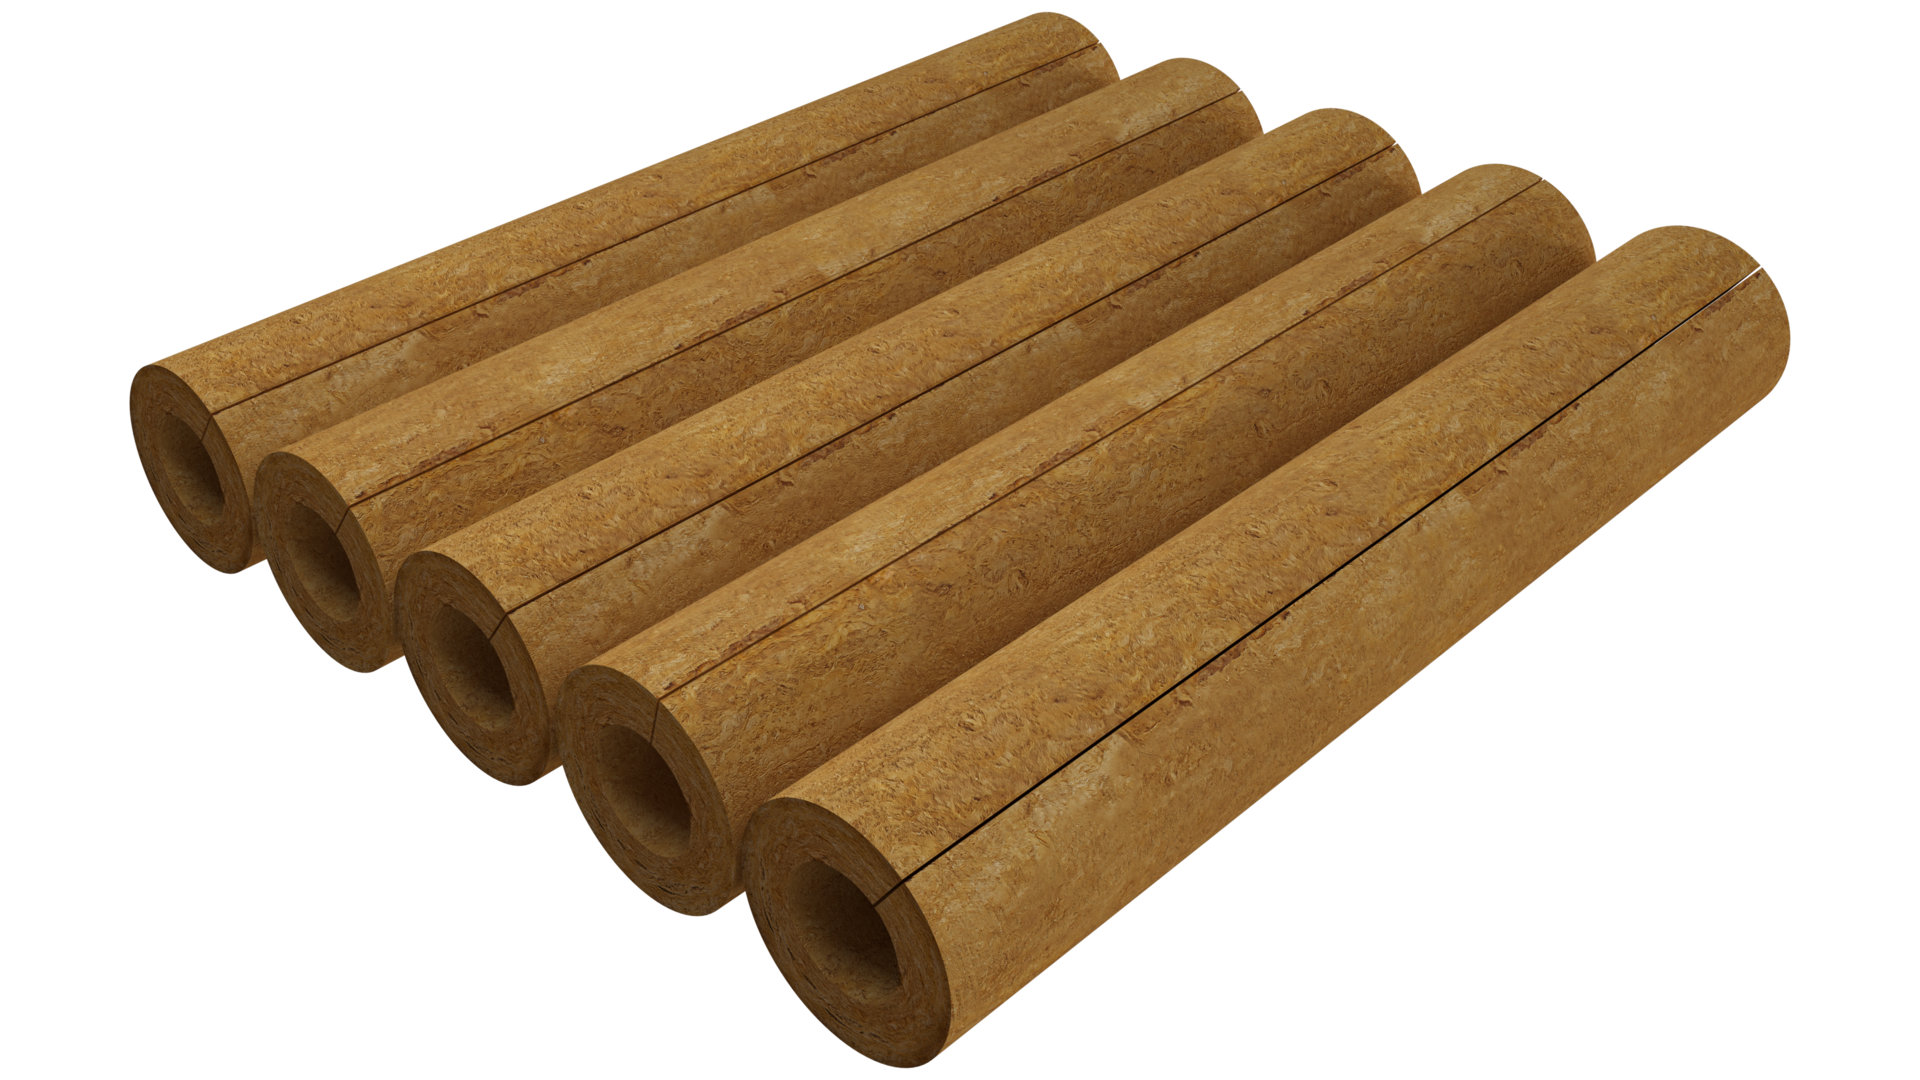 package, product, cylinders ROCKWOOL 150, rolls, HVAC